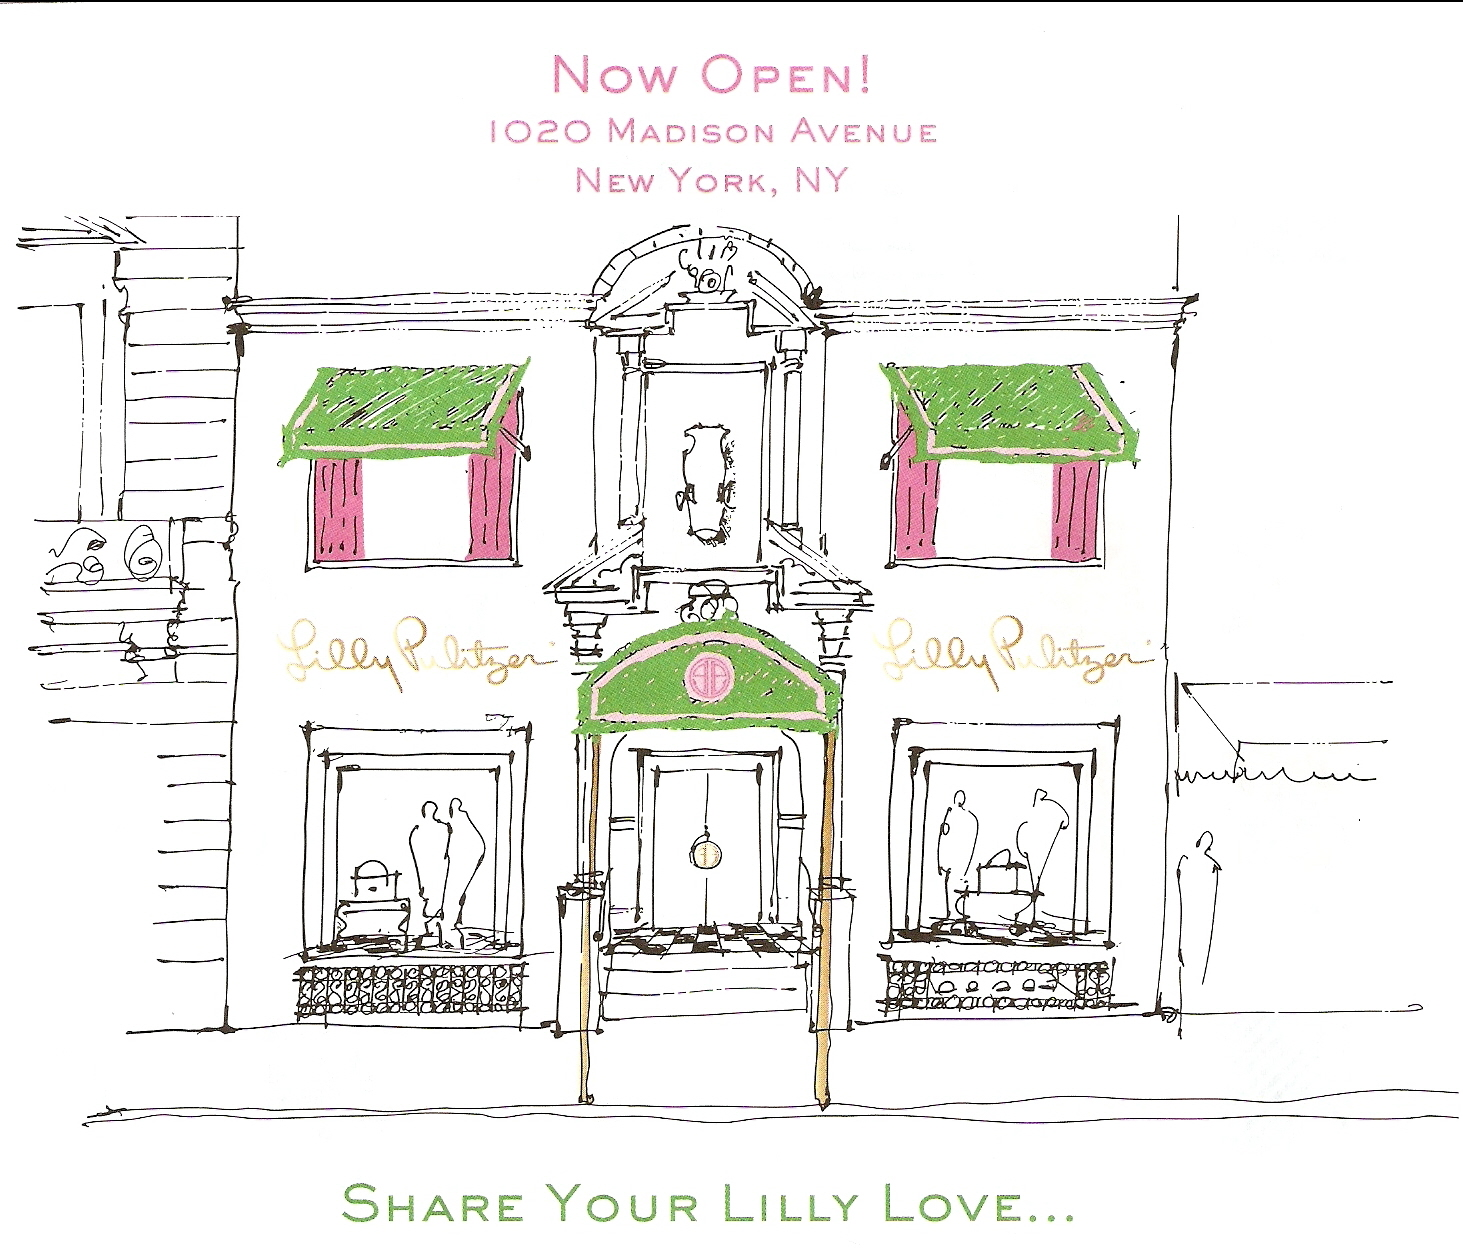 Lilly Pulitzer Madison Avenue